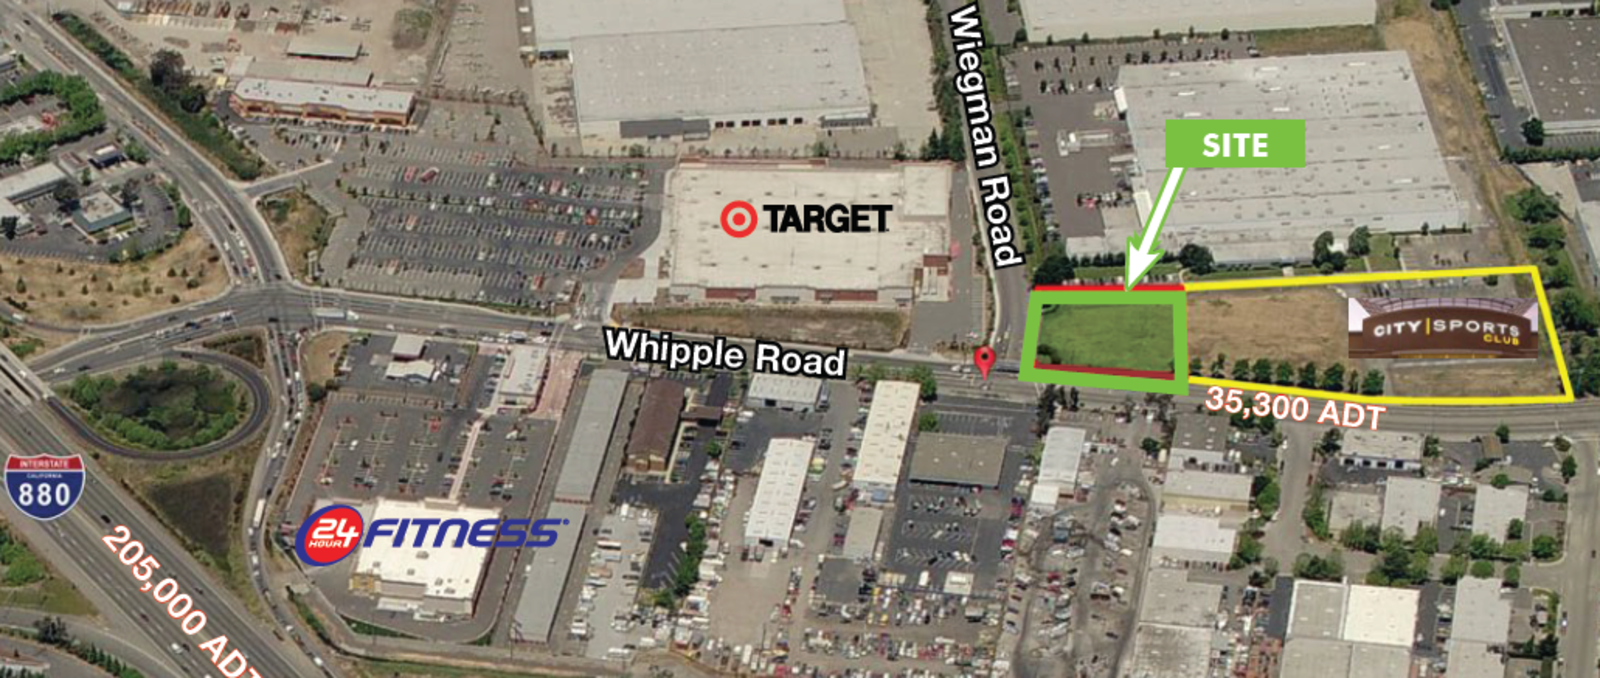 CBRE RetailWhipple Road & Wiegman RoadWhipple Road & Wiegman Road  Photo